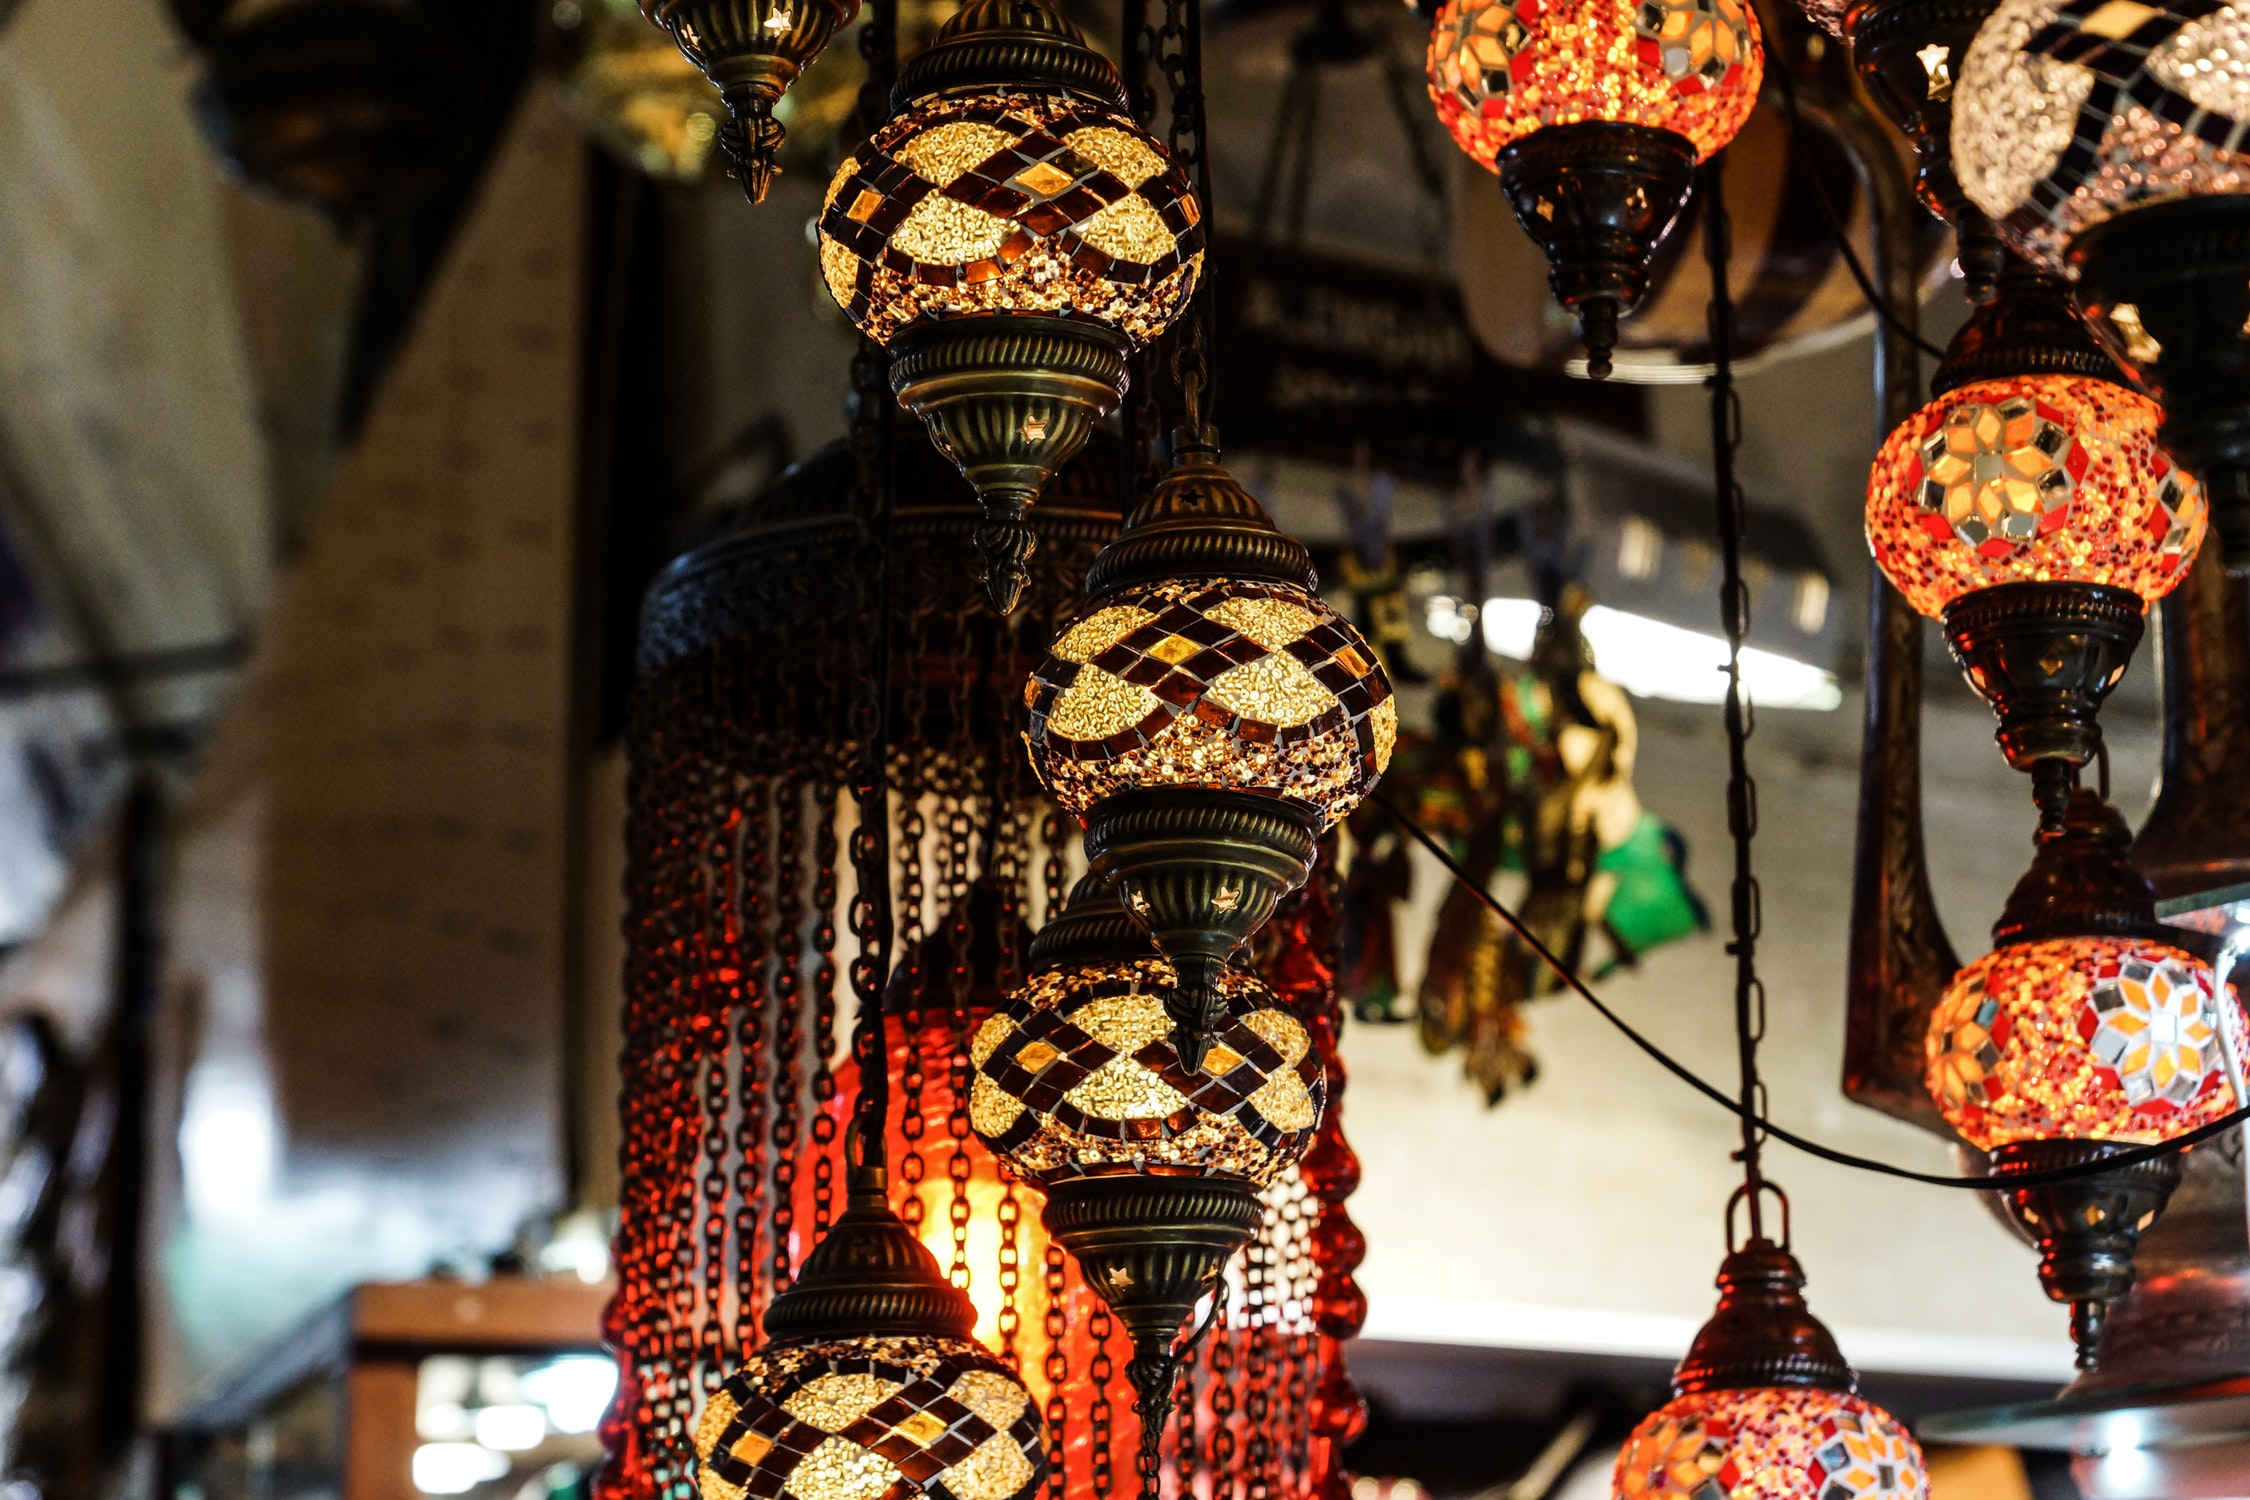 Beautiful stained glass lanterns hanging in a Turkish bazaar.